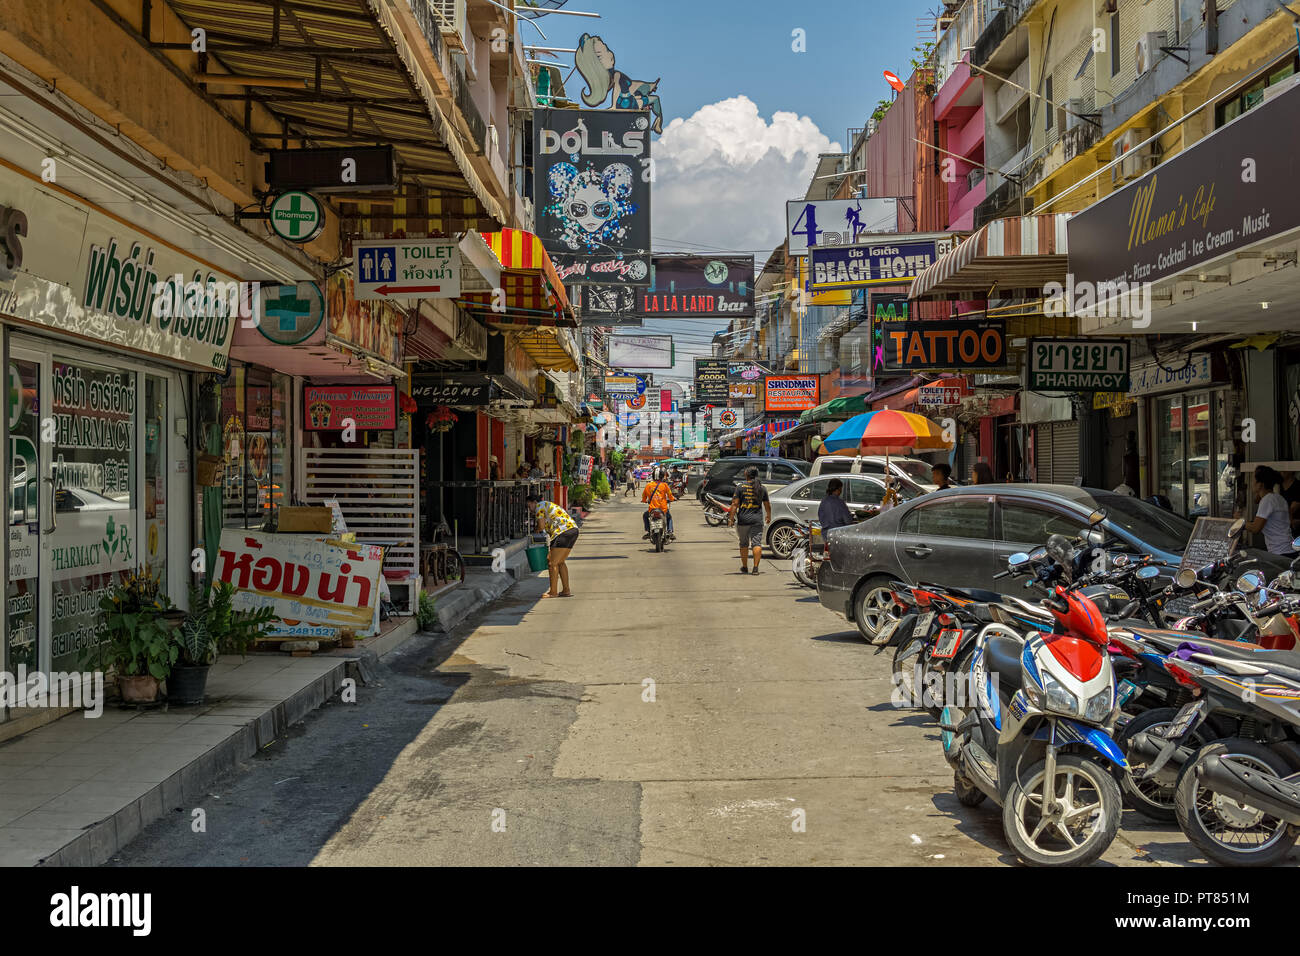 PATTAYA,THAILAND - APRIL 20,2018: Soi 6 In this street are many bars